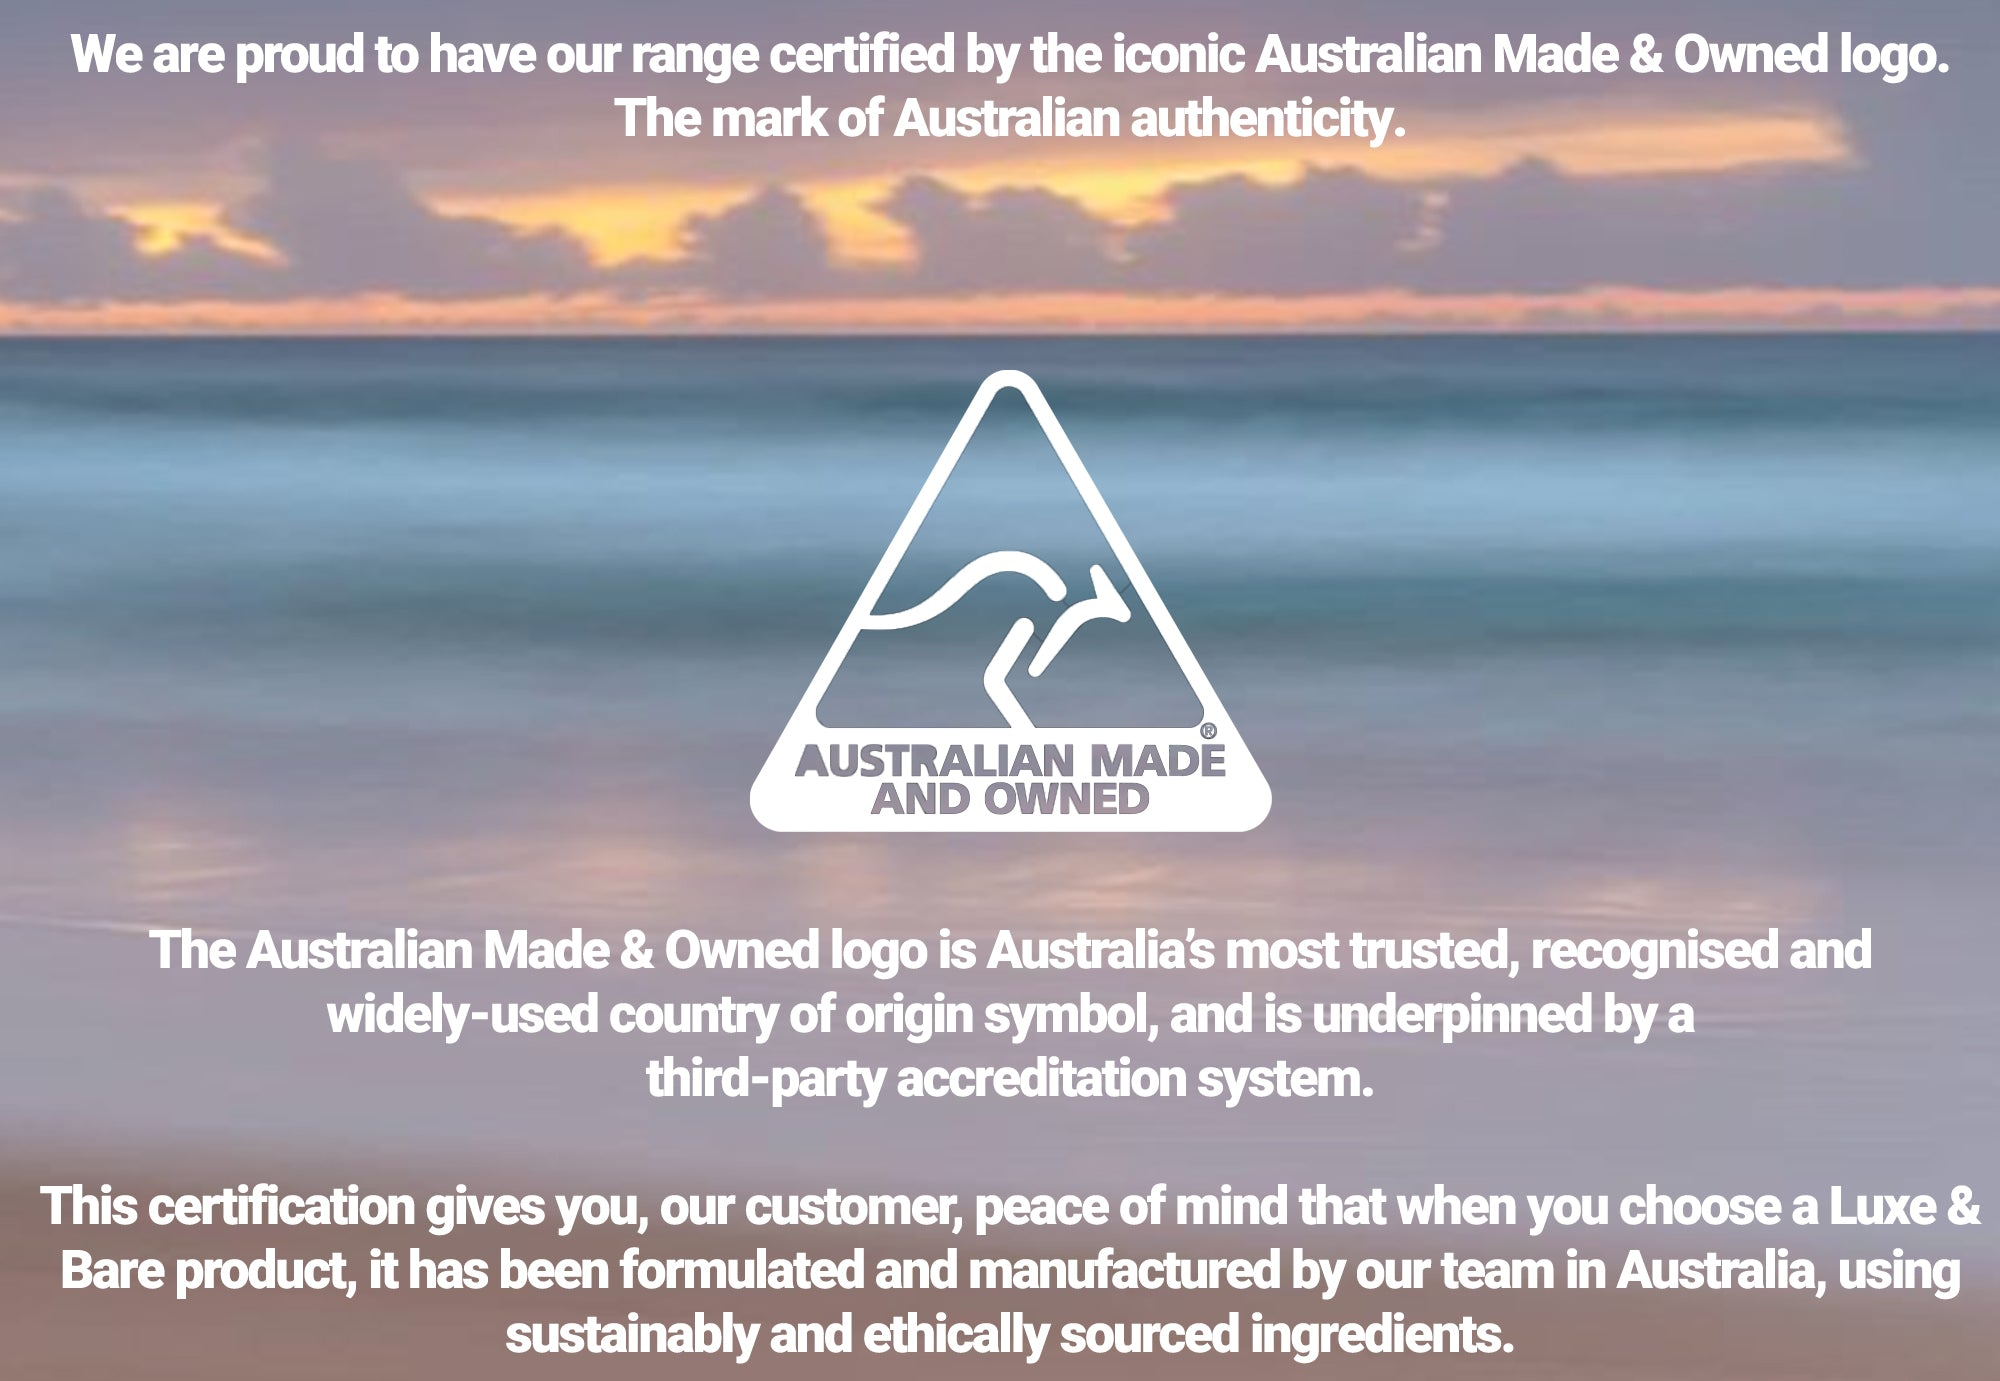 Australian made bath products. Certified as Australian made and owned.